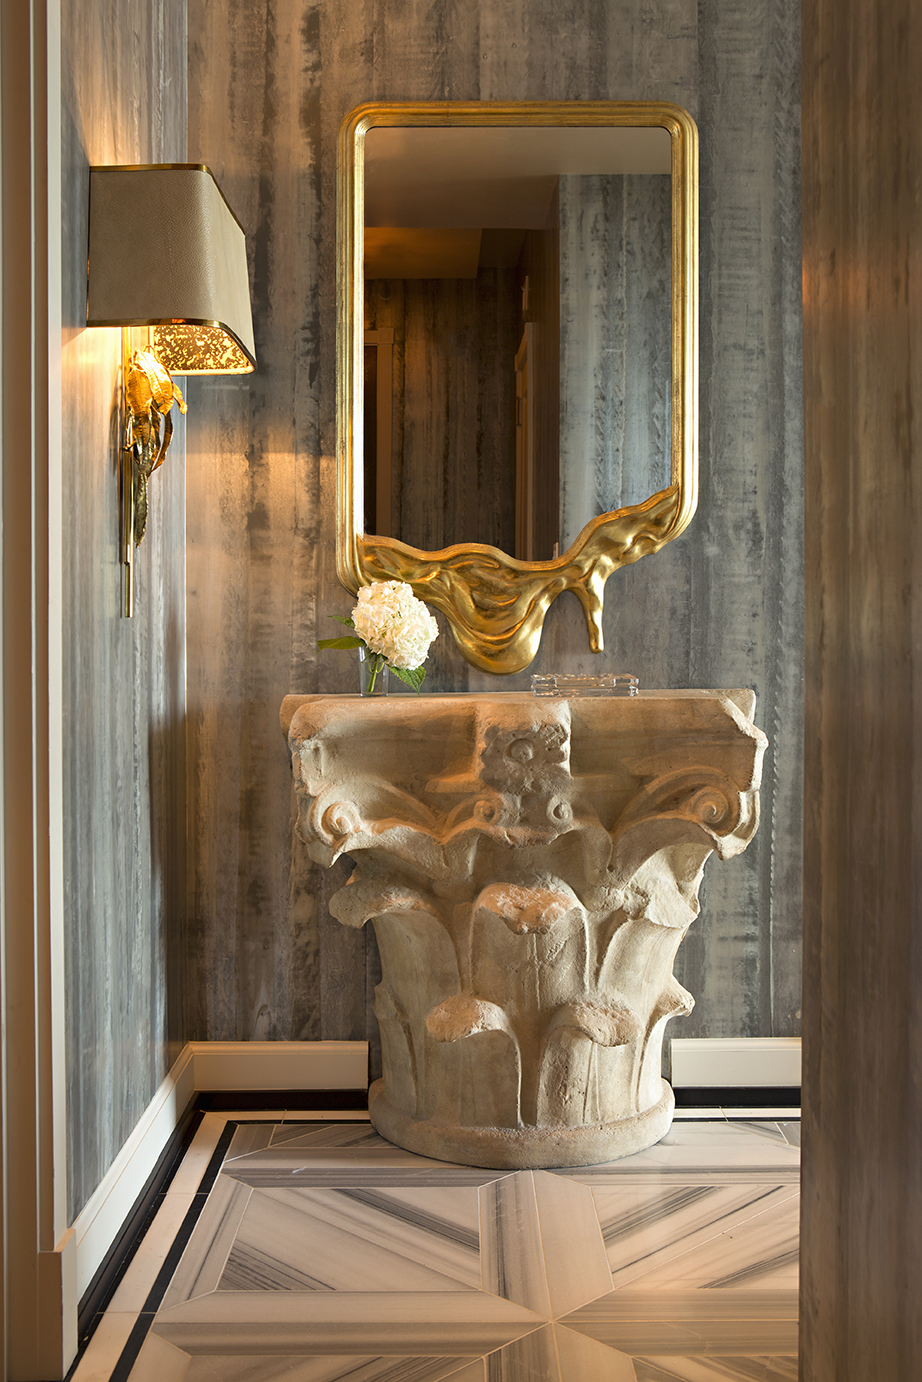 Interior design by Woodson and Rummerfields House of Design - Photography: Karyn Millet - High Point Market 2017 Style Spotters - Furniture trends 2017 - Luxury powder room designs - decorative gold mirrors - glamorous gold sconces high point market 2017 High Point Market 2017: What are the Style Spotters Most Excited for? RM 1225R